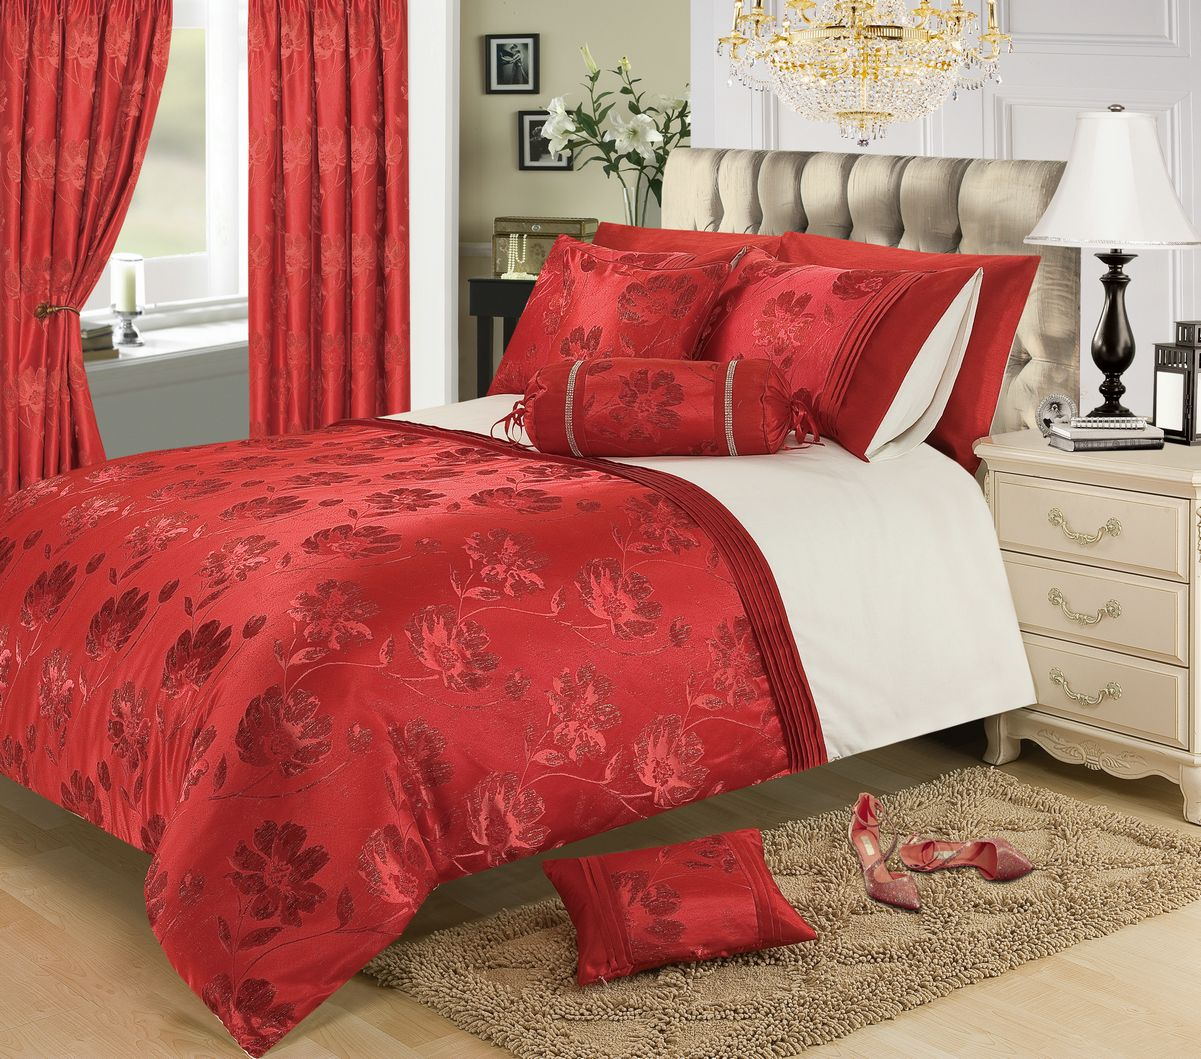 Red Burgundy Colour Stylish Floral Jacquard Duvet Cover